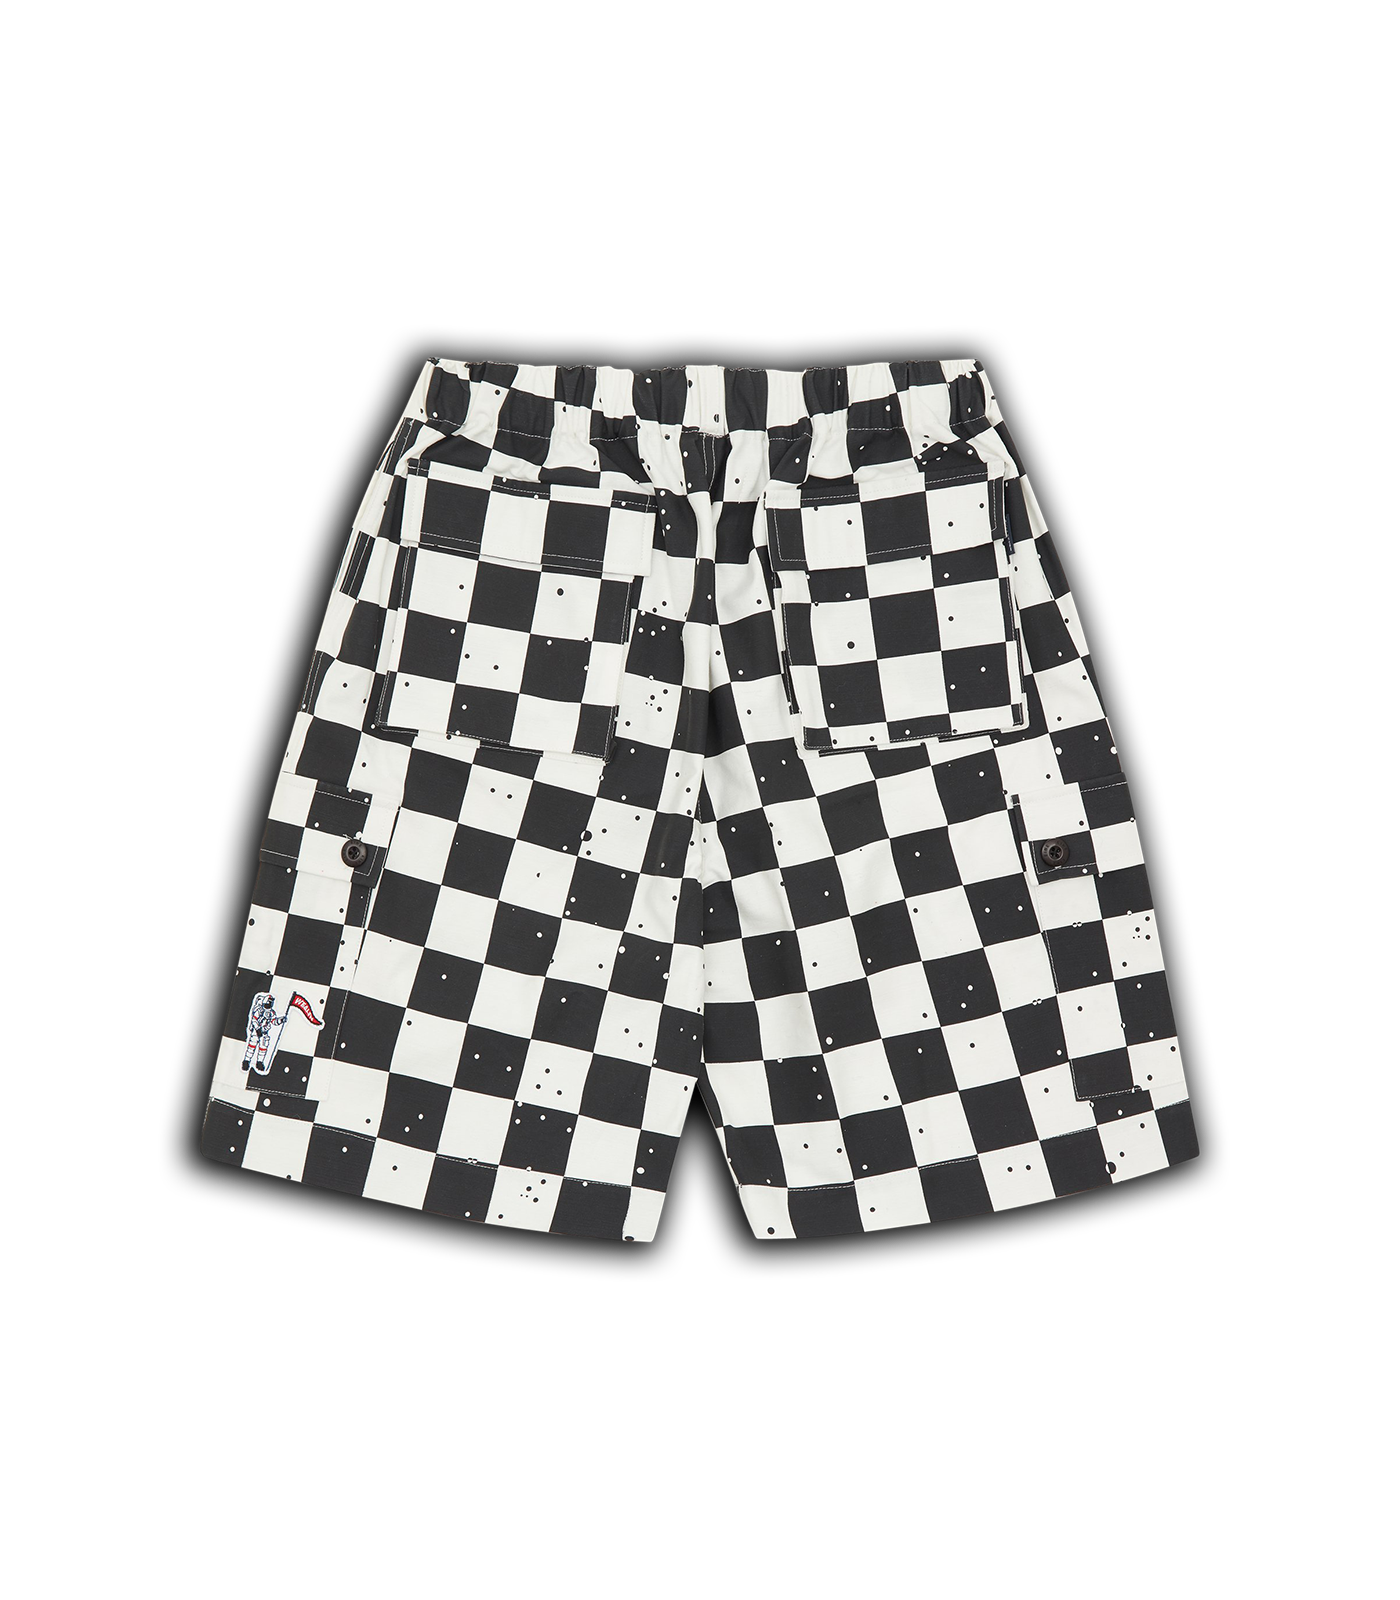 SPACE CHECK CARGO POCKET SHORTS - WHITE